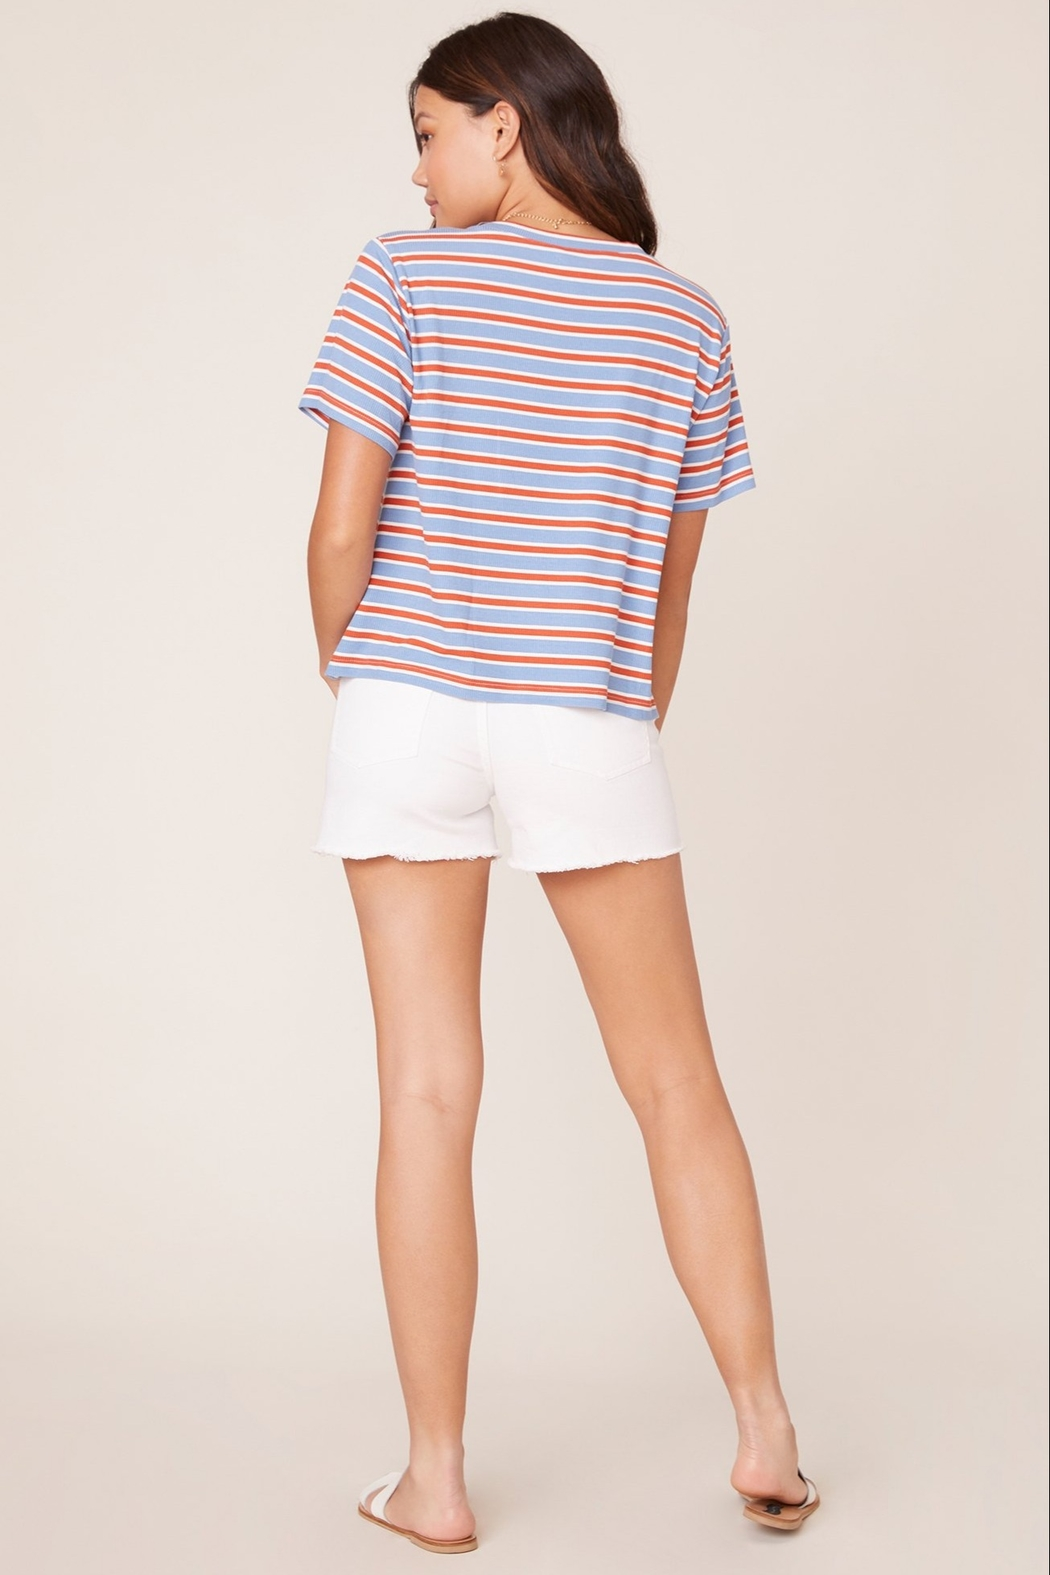 BB Dakota Relaxed Fit Tee - Back Cropped Image